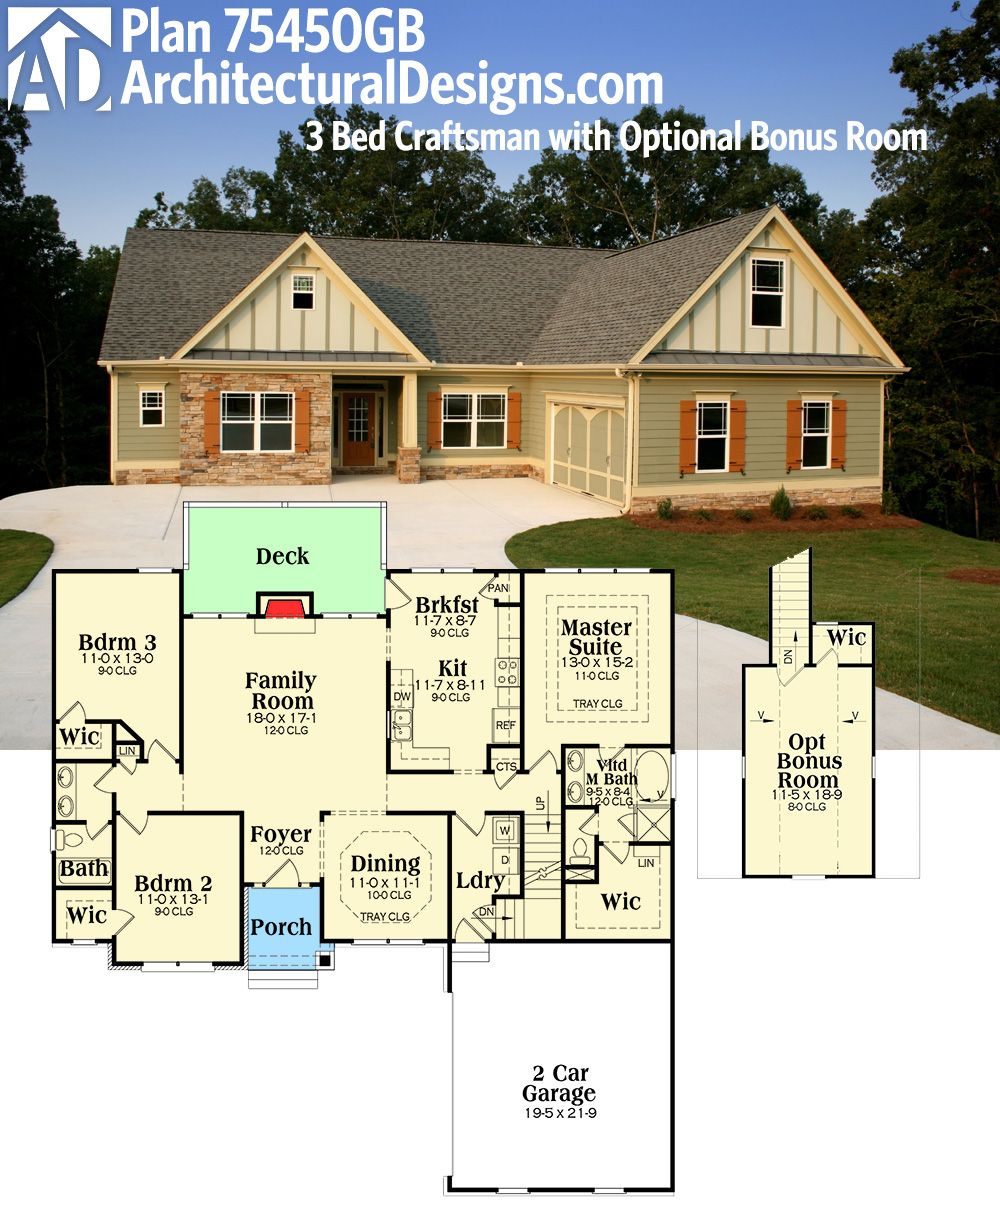 Plan 75450gb 3 bed craftsman with optional bonus room for Single story house plans with bonus room above garage